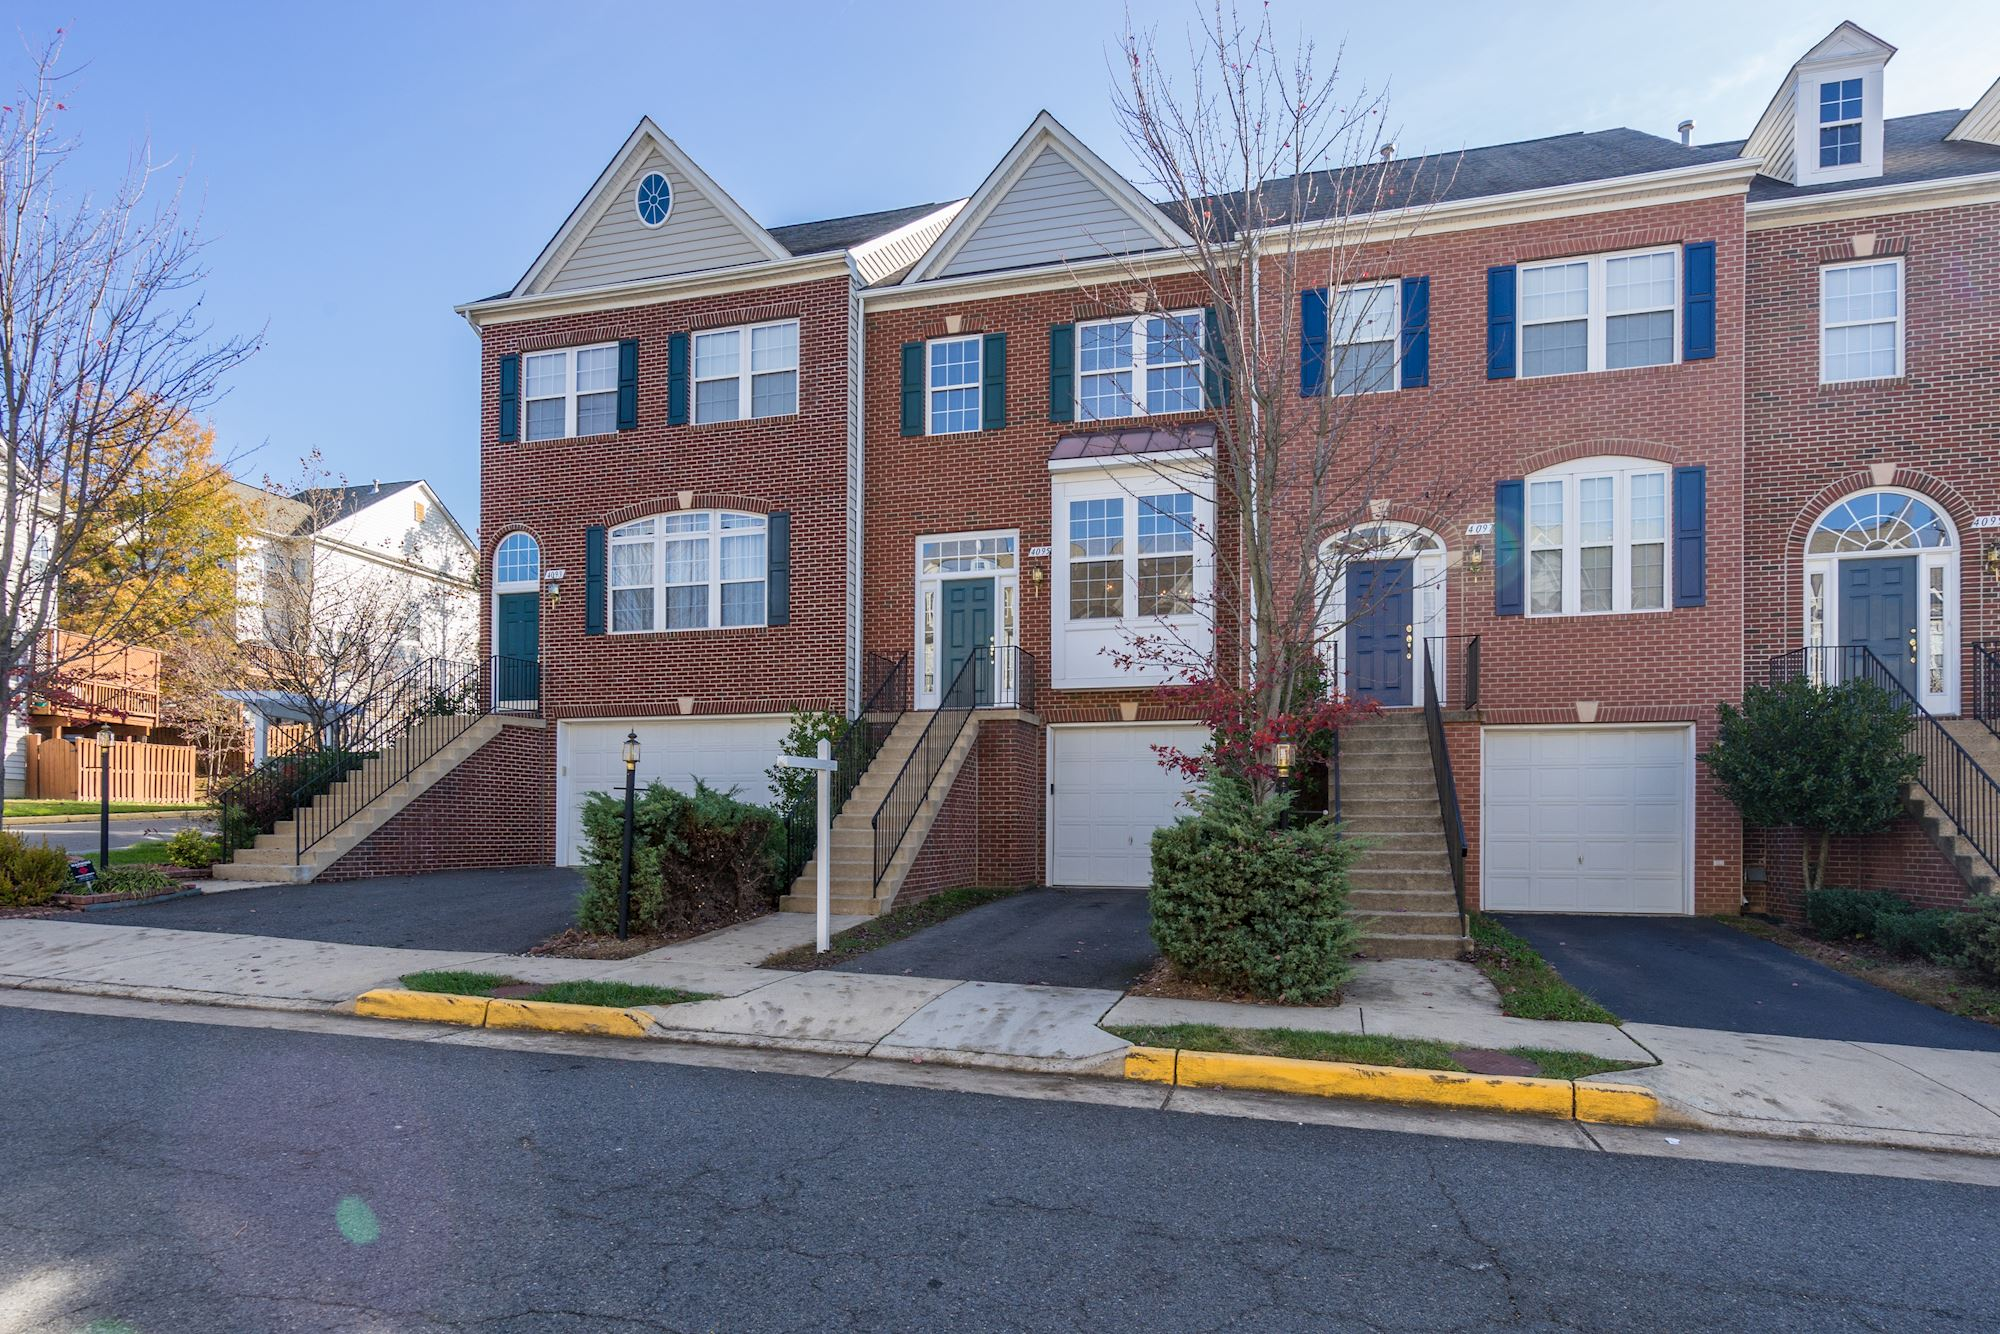 SOLD: Brick, Single Family Townhouse in Fairfax